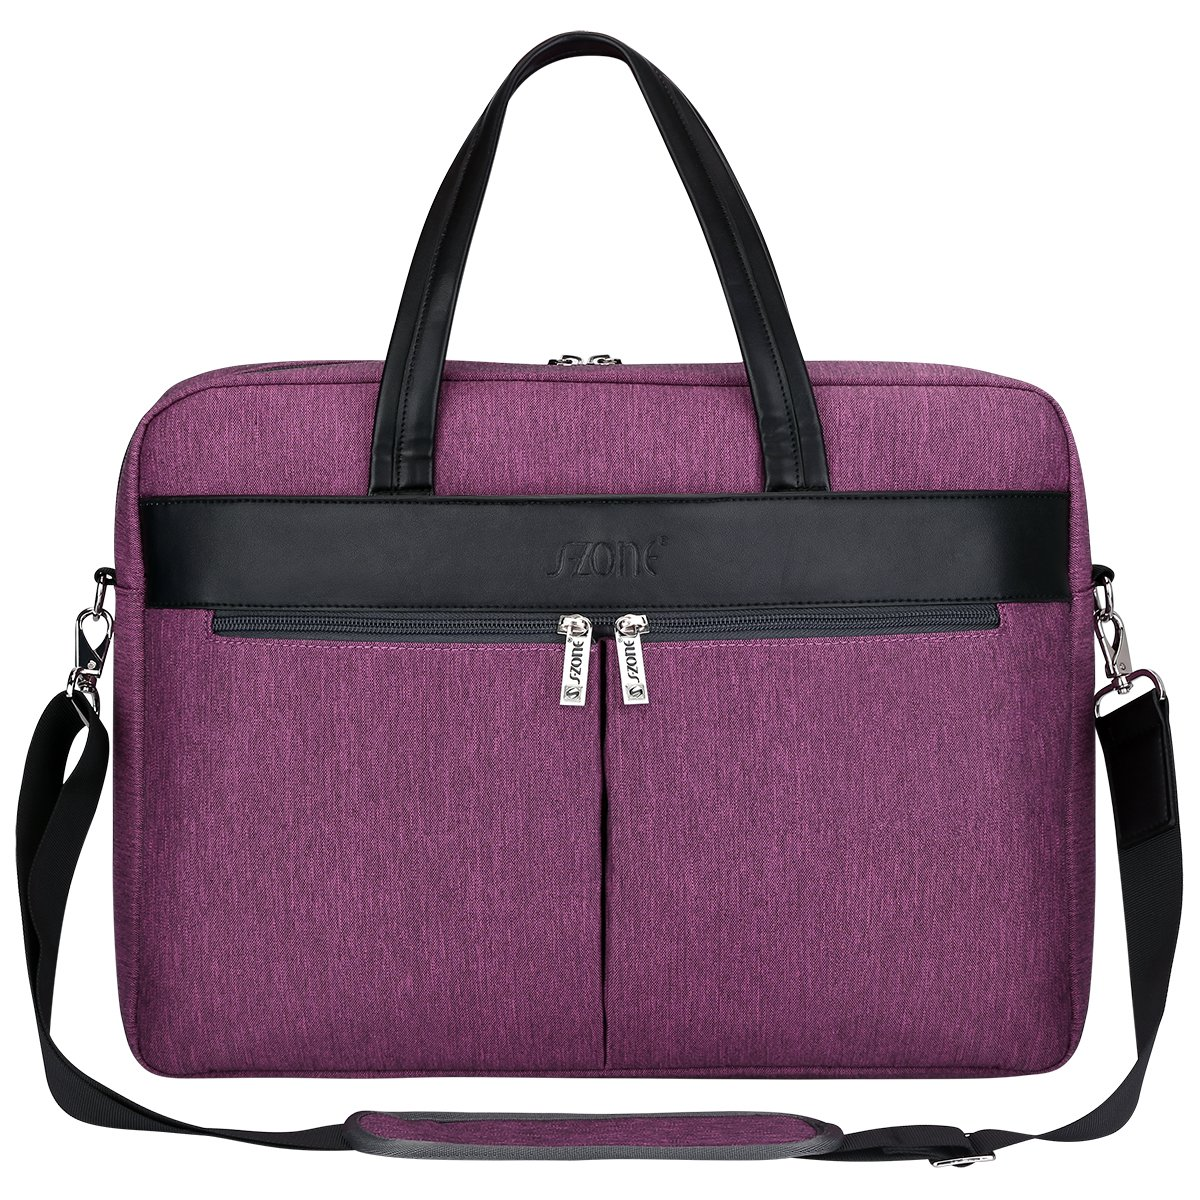 S-ZONE Fashion Women 15.6 inch Laptop Messenger Bag Business Work Tote Bag